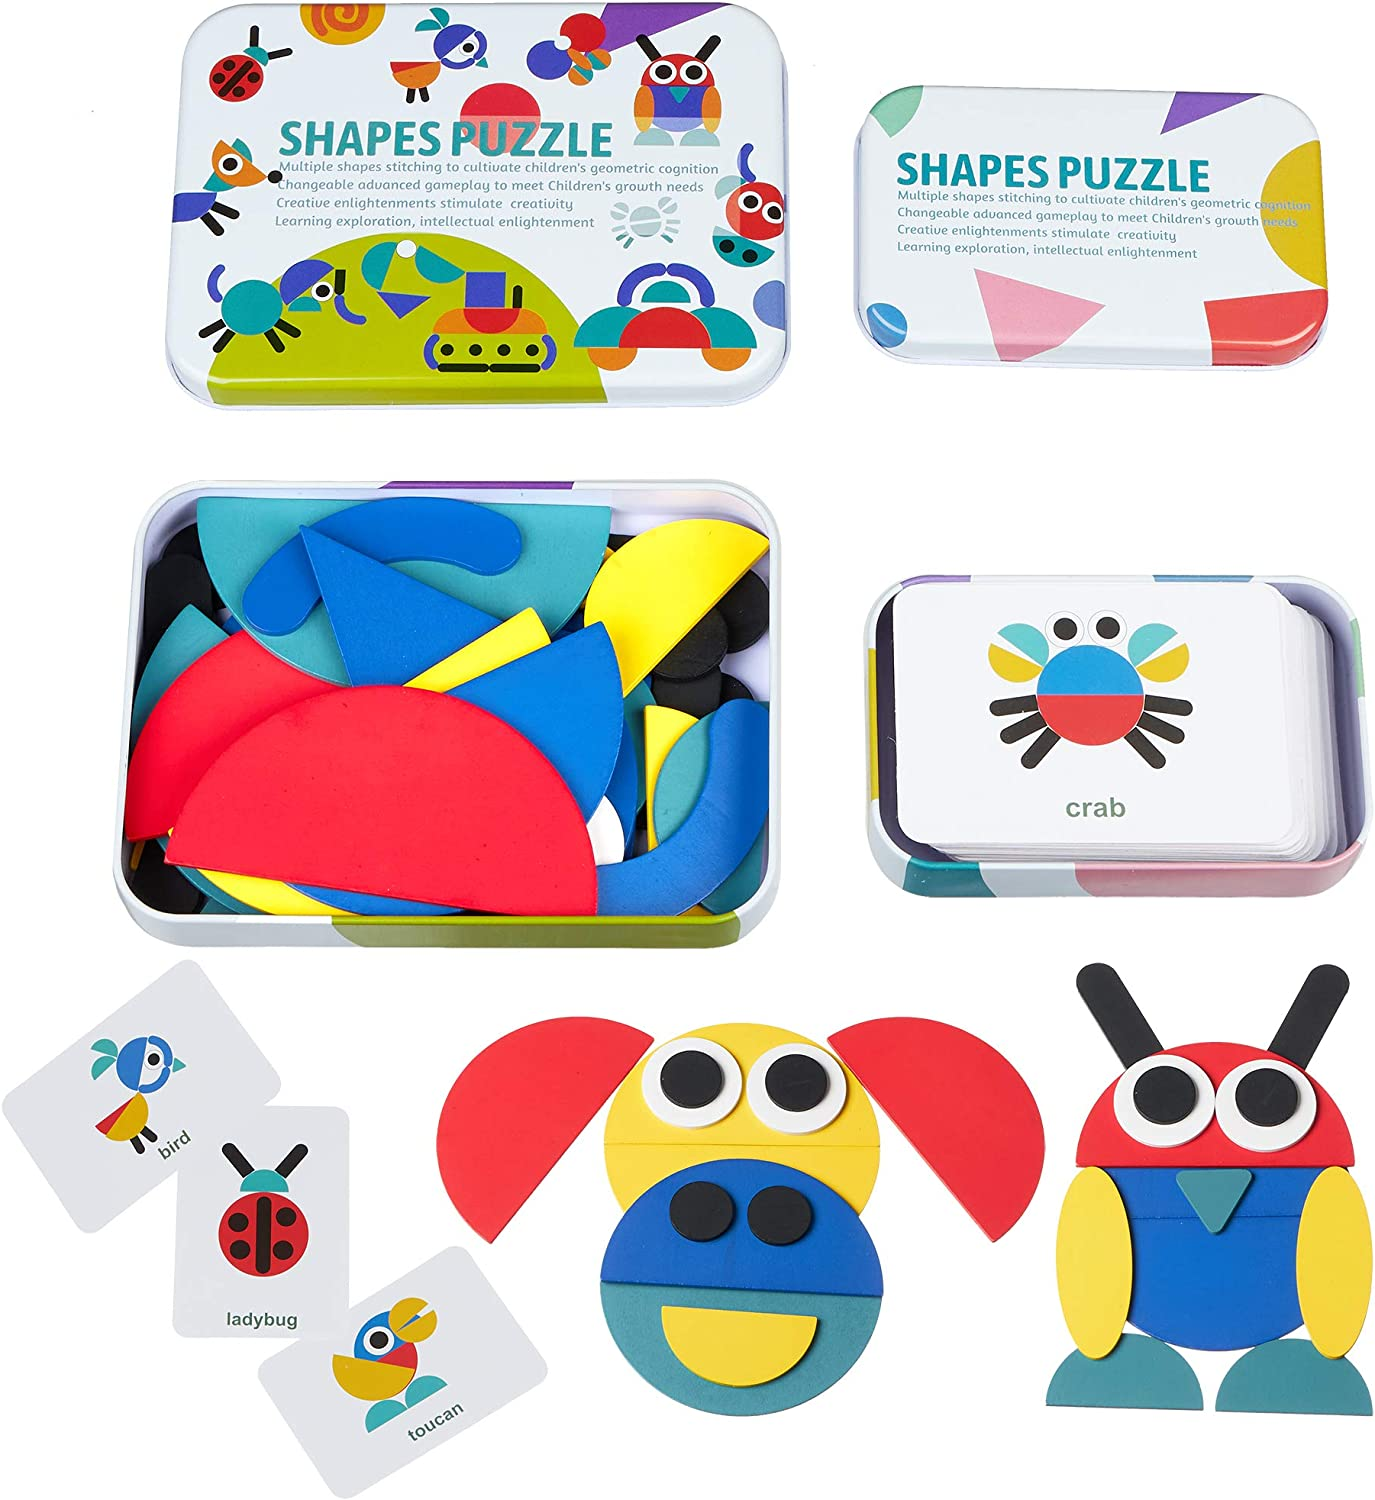 Kcuina Shapes Puzzle - 36 Wooden Blocks for Making Animals, Figures, 60 Design Cards for Pattern Guidance - Montessori Educational Toy for Boys & Girls - Craft Gifts for Kids - Sorting & Stacking Game